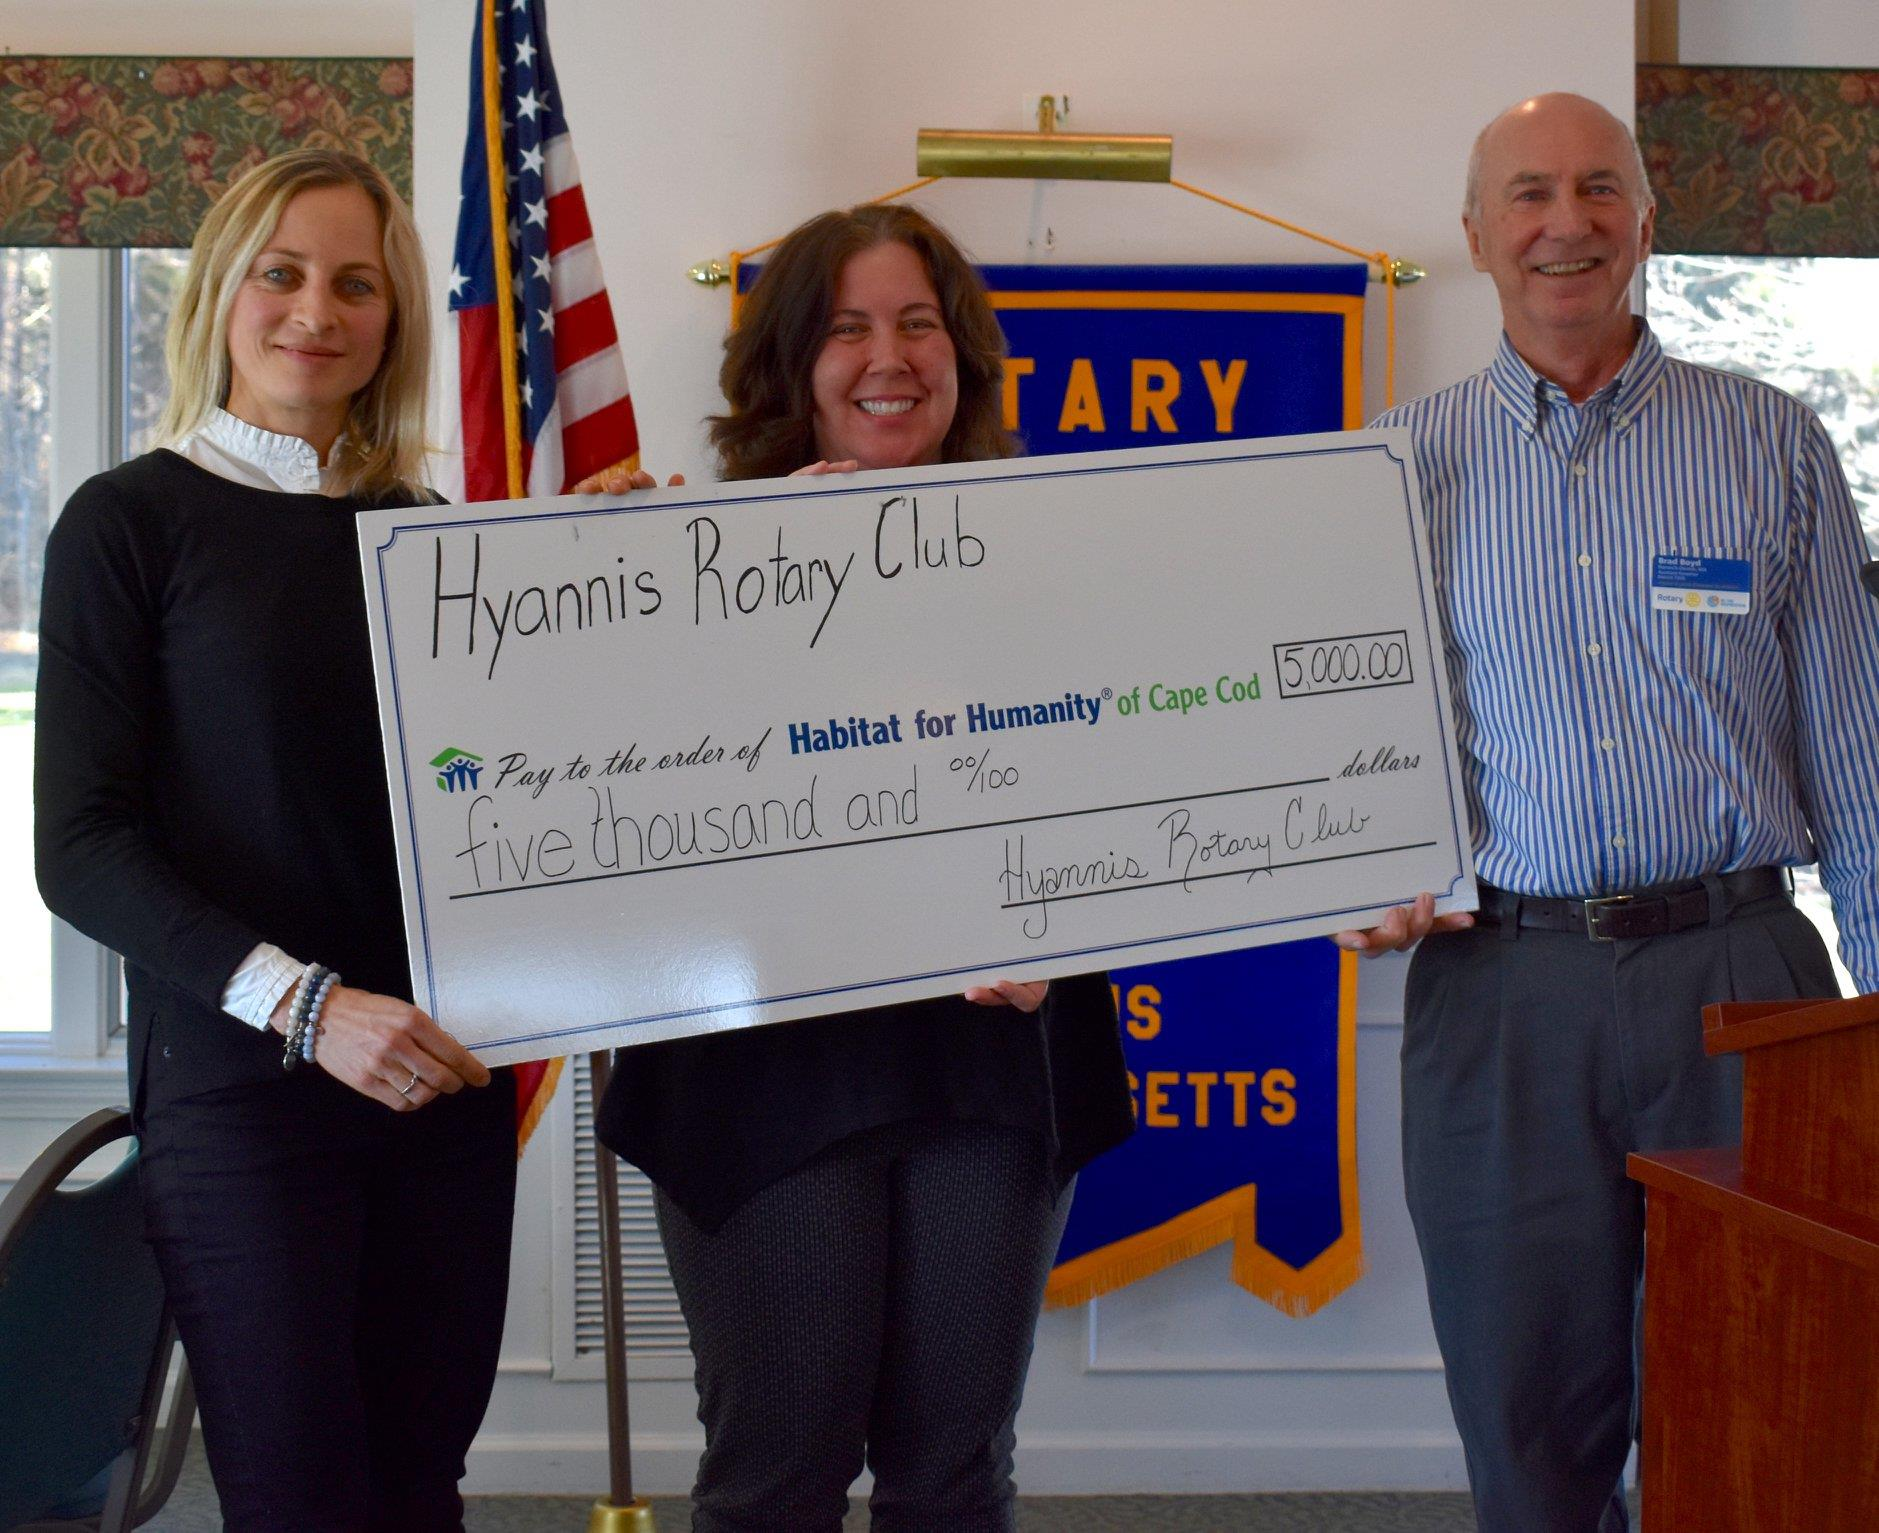 Stories | Rotary Club of Hyannis